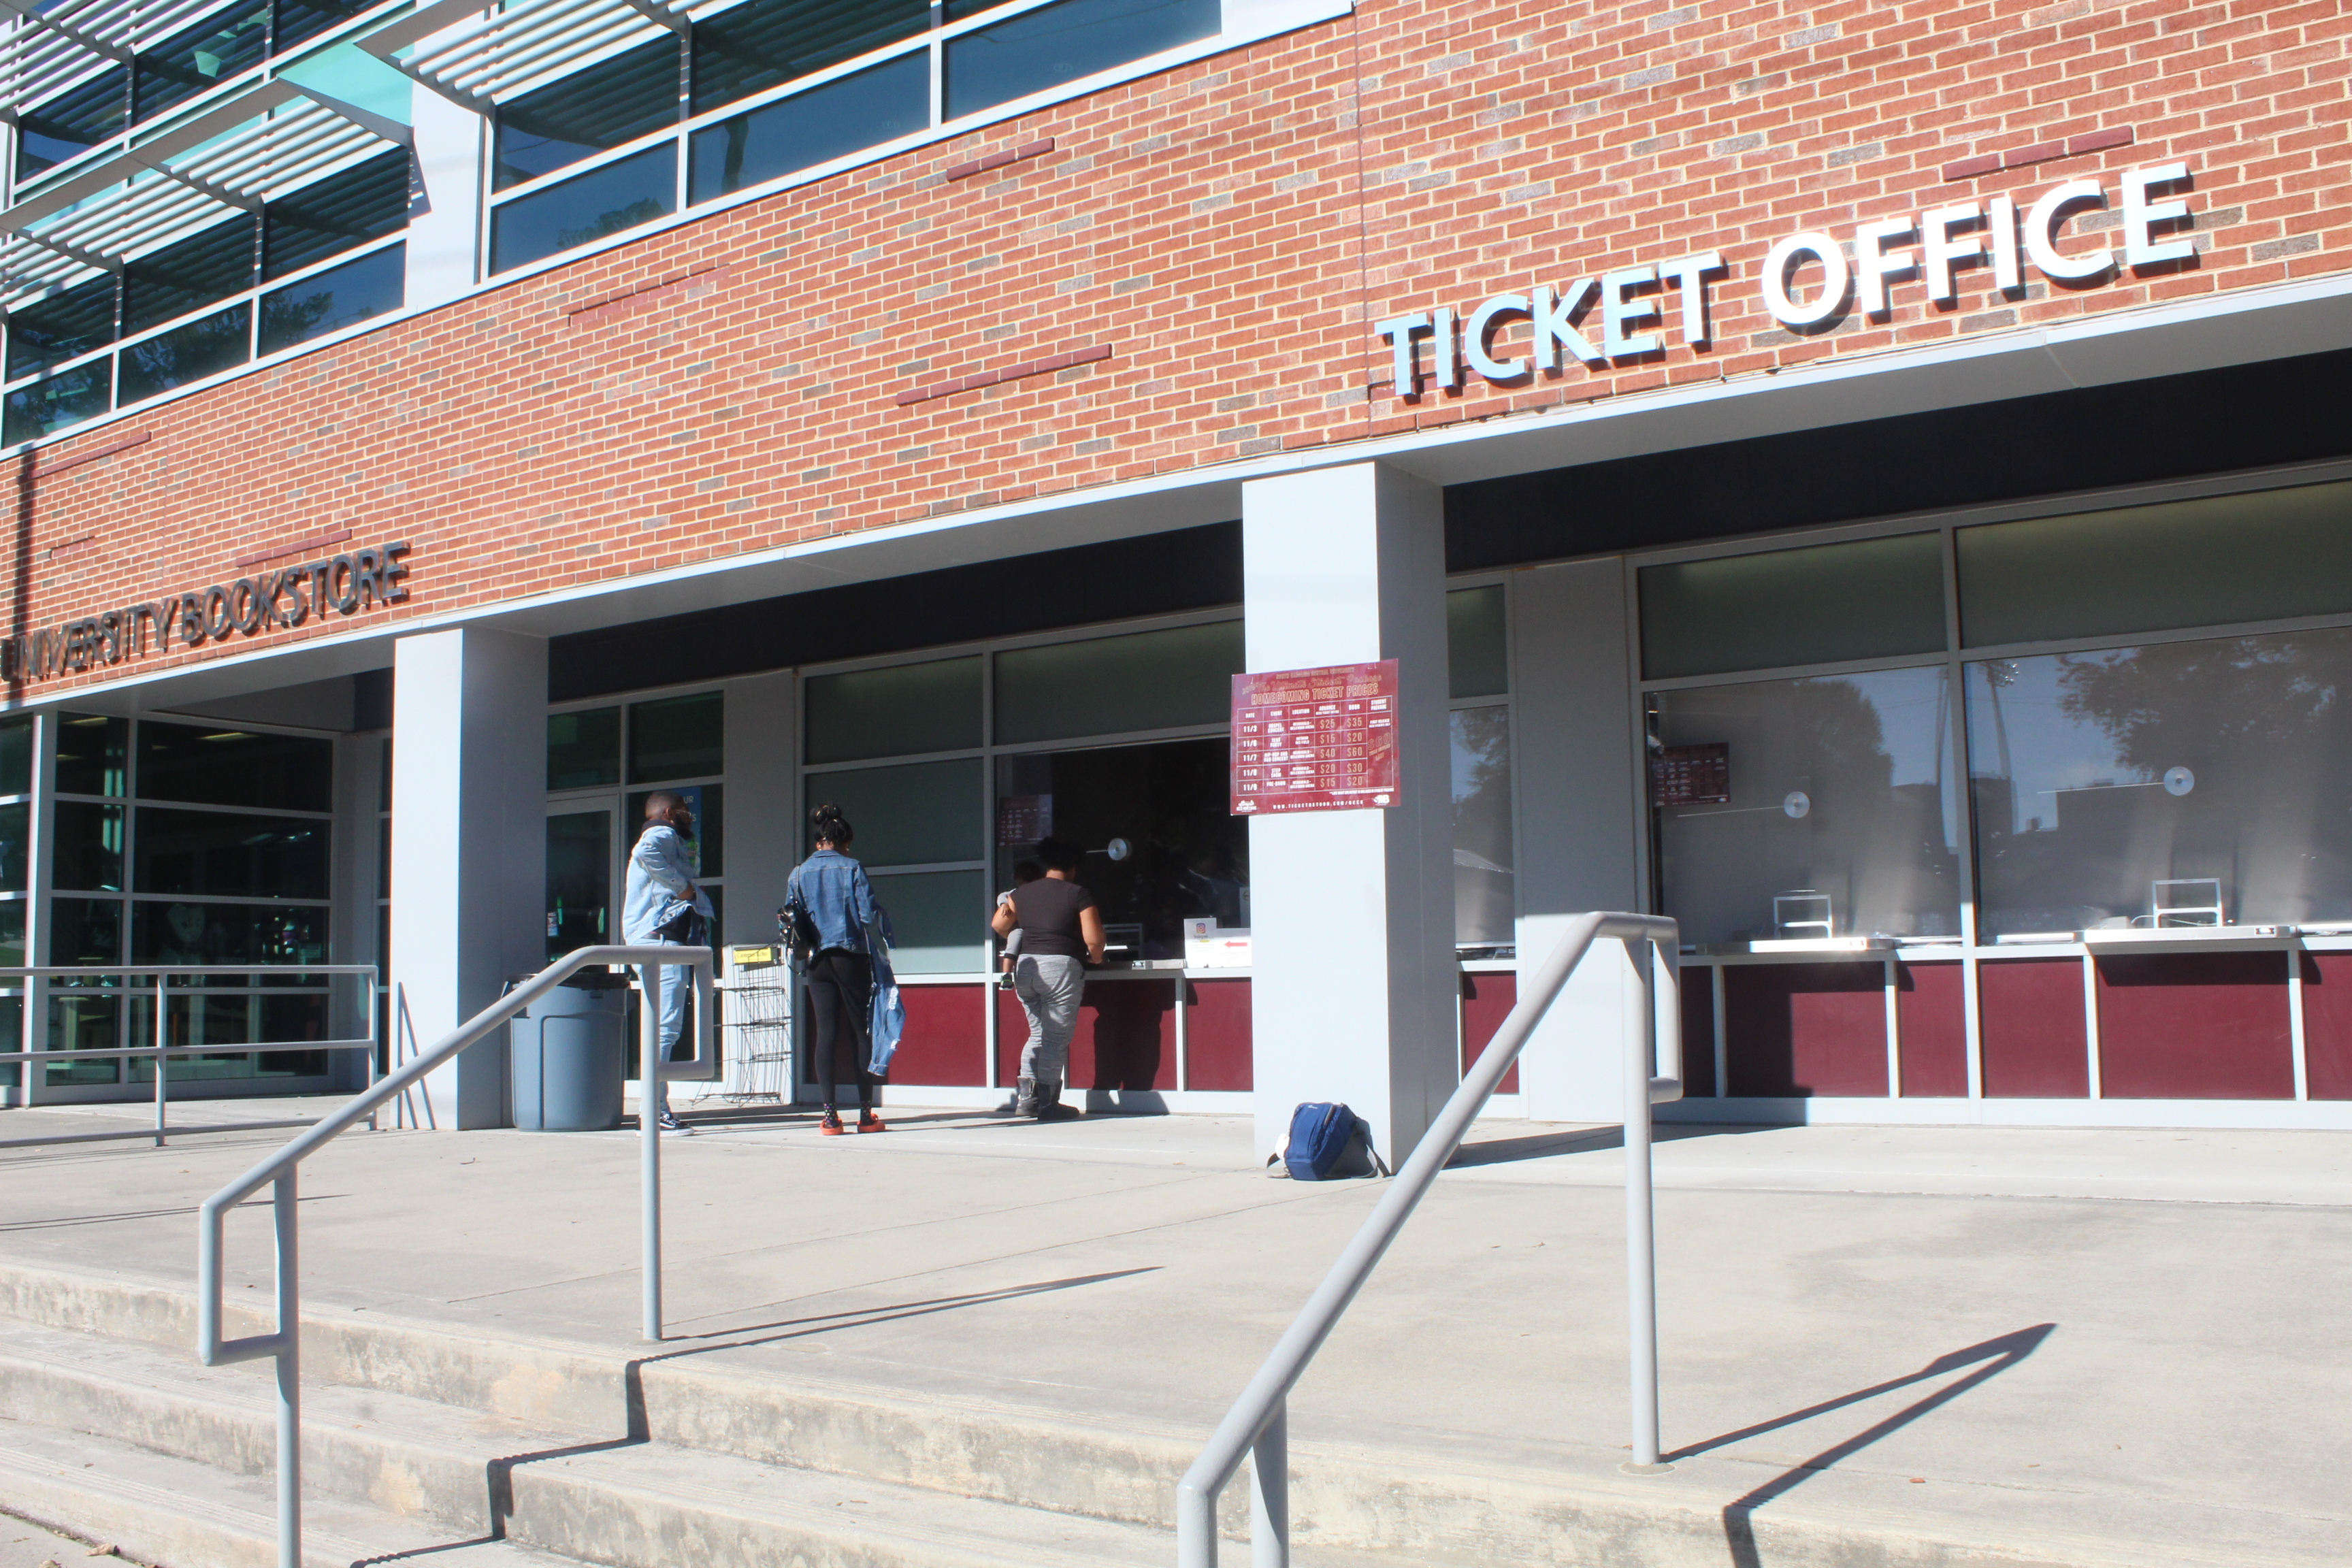 ticket-office-pic.jpg?time=1632326603